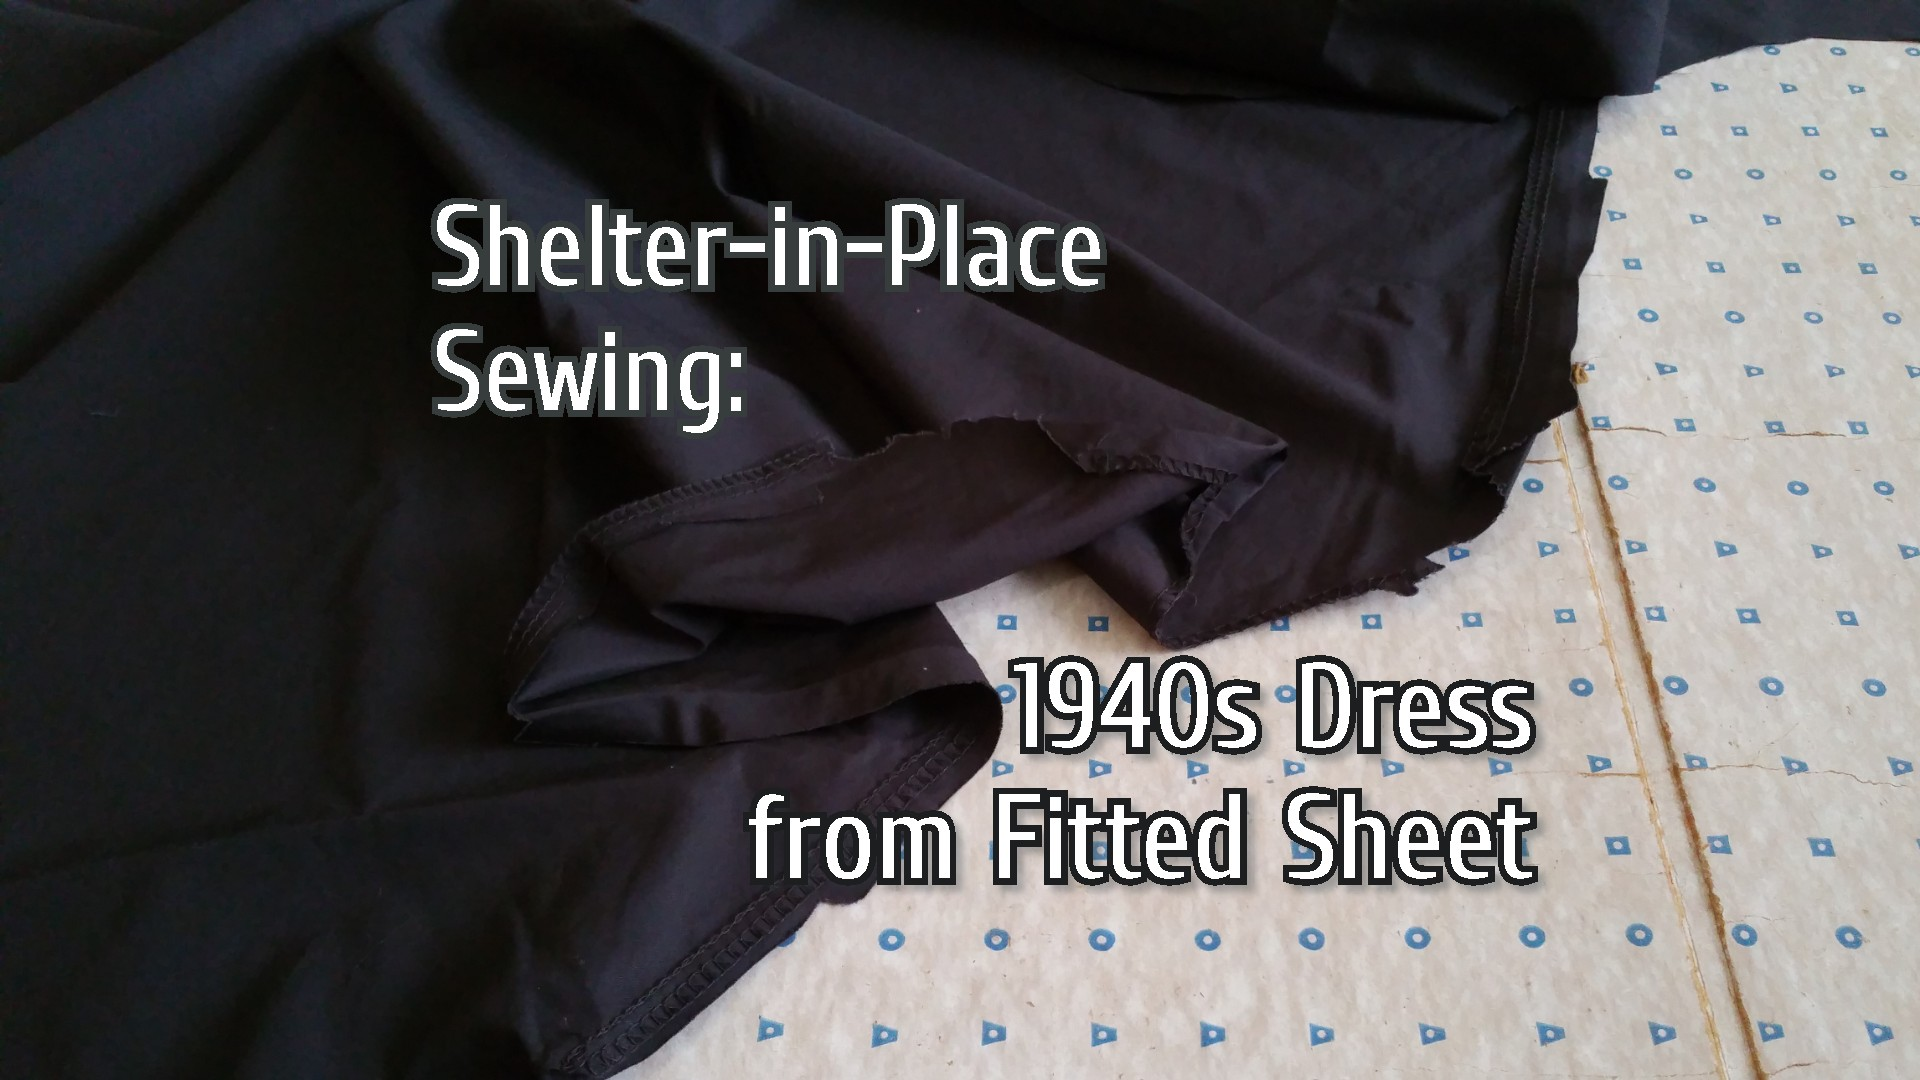 Shelter-in-Place Sewing: 1940s Dress From Fitted Sheet